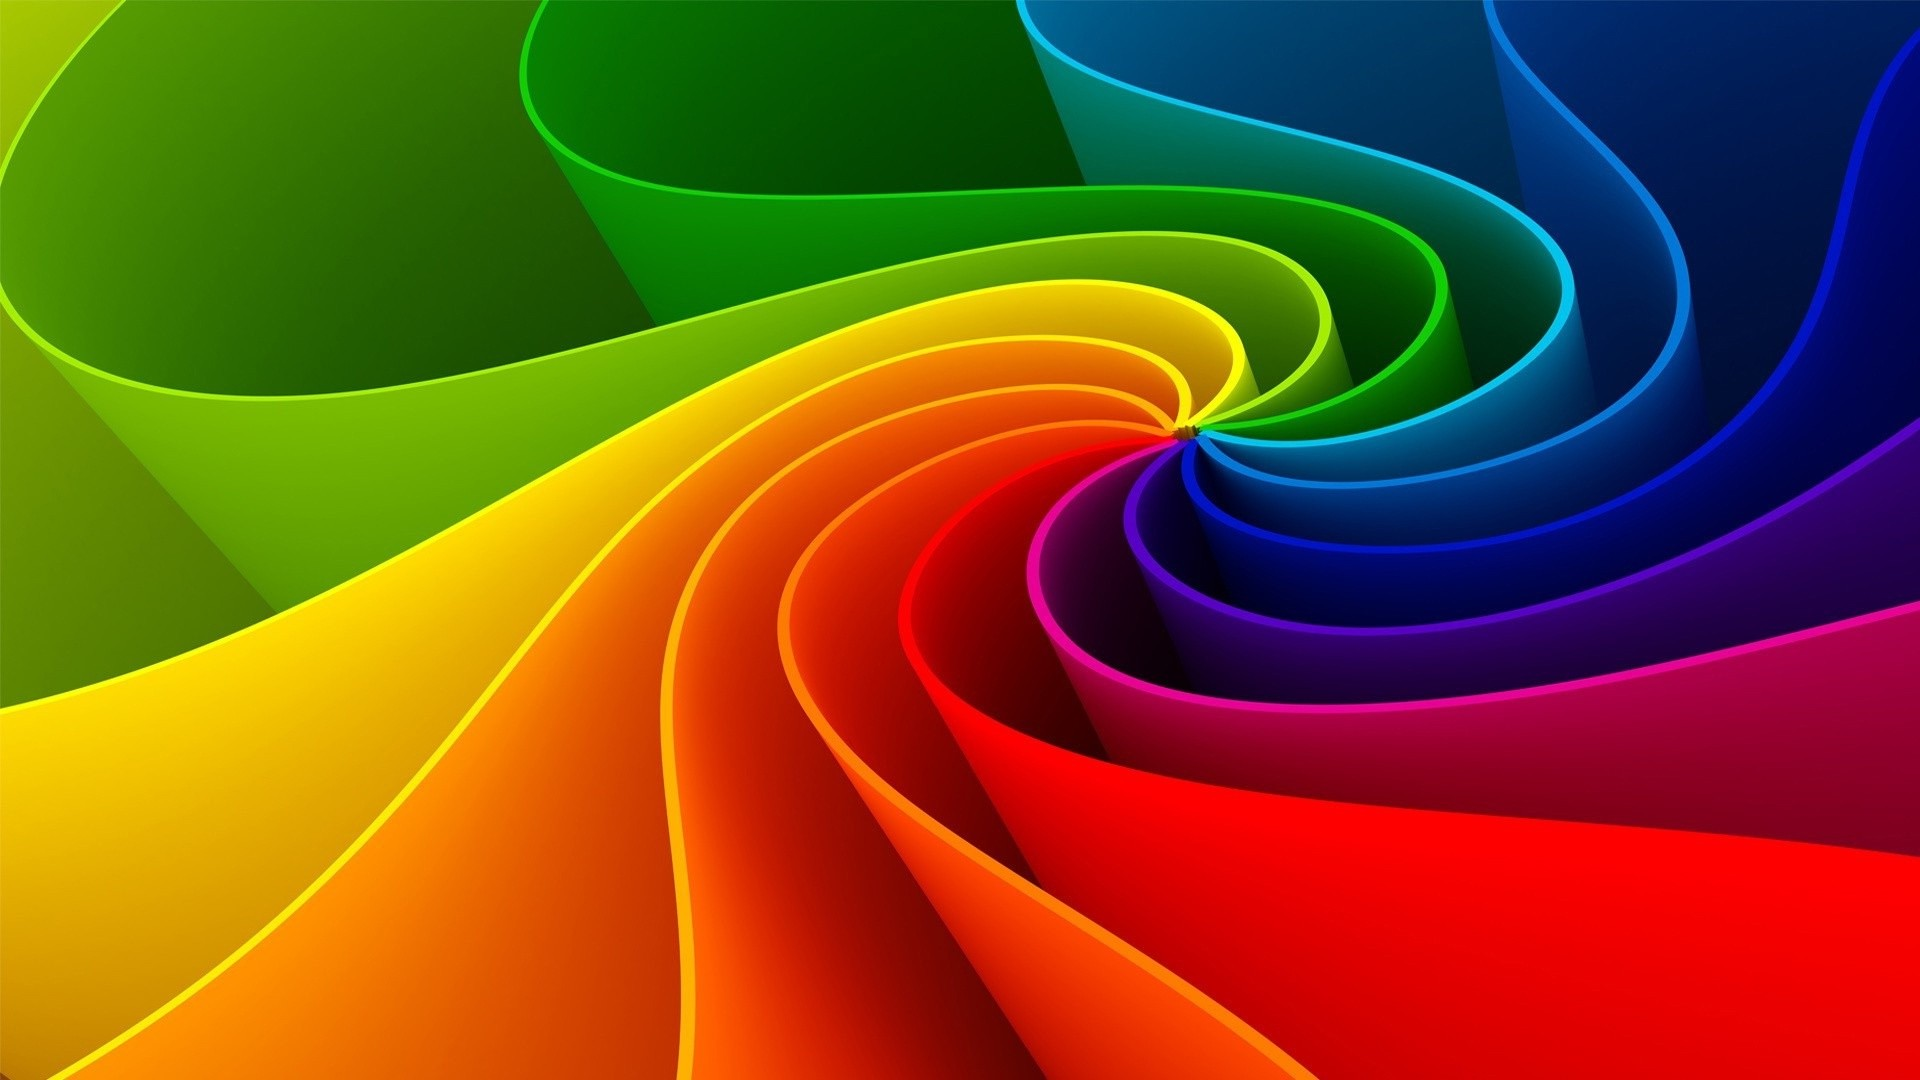 Best Hd Wallpapers For Tablets: 14 Fantastic HD Rainbow Wallpapers